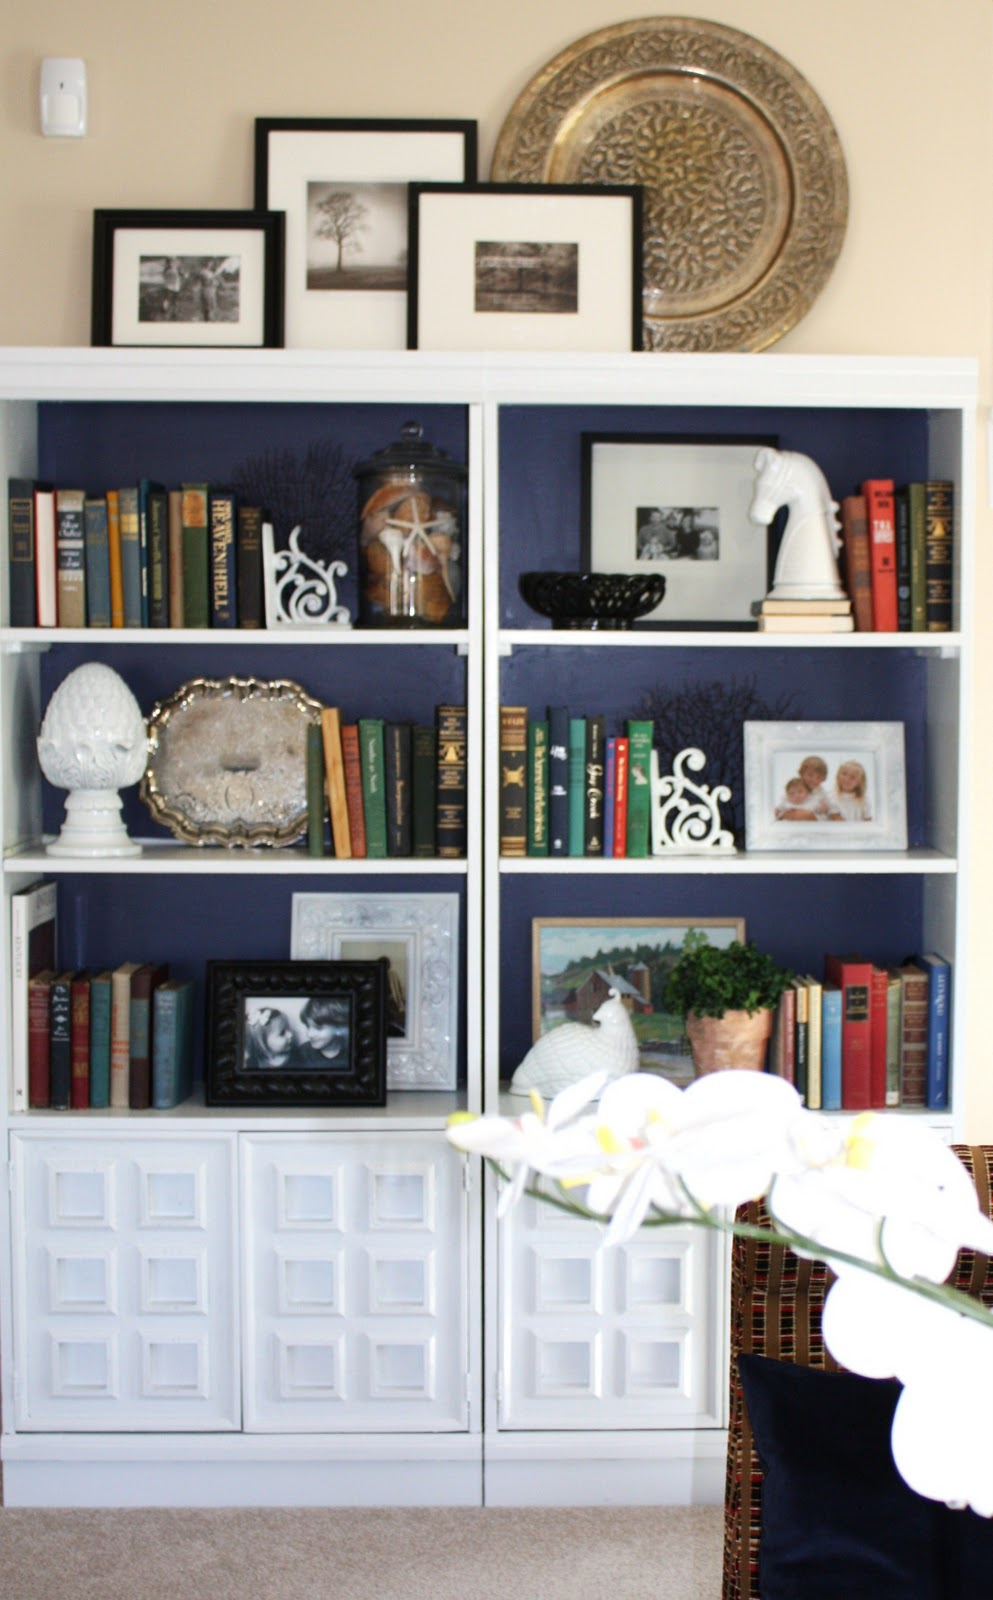 couple of weeks ago i shared my bookcase makeover and while the